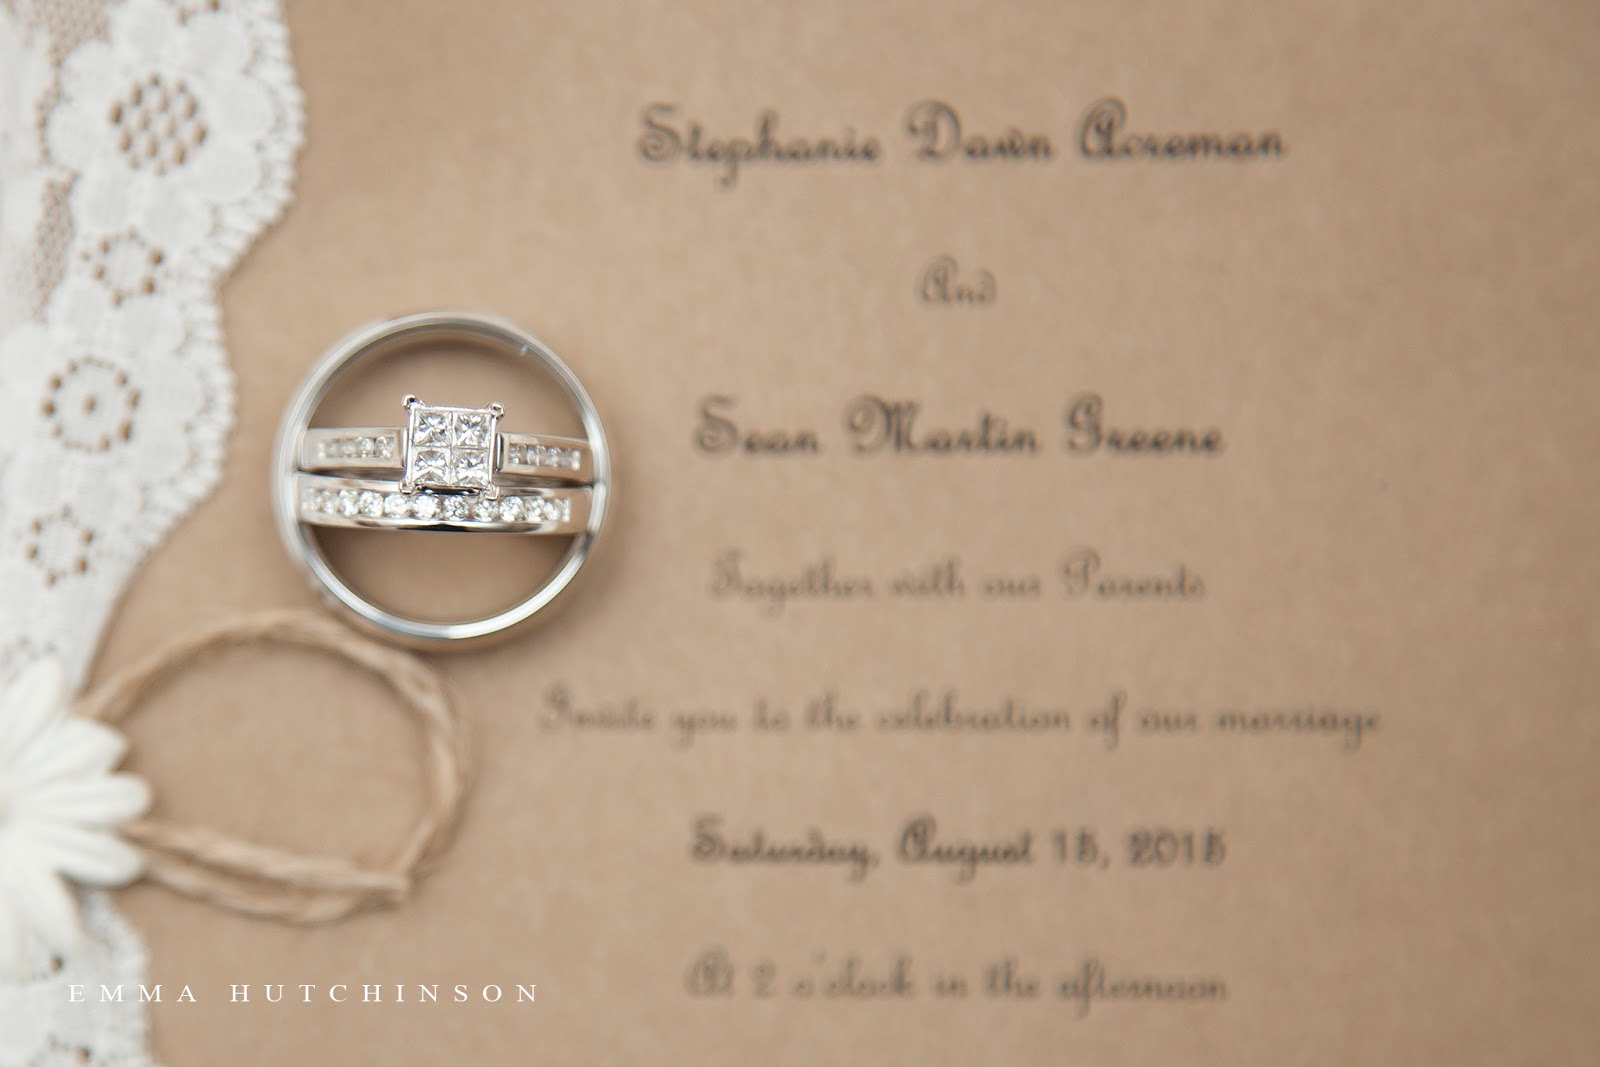 Weddings in Tilting, Fogo Island - photograph of wedding rings